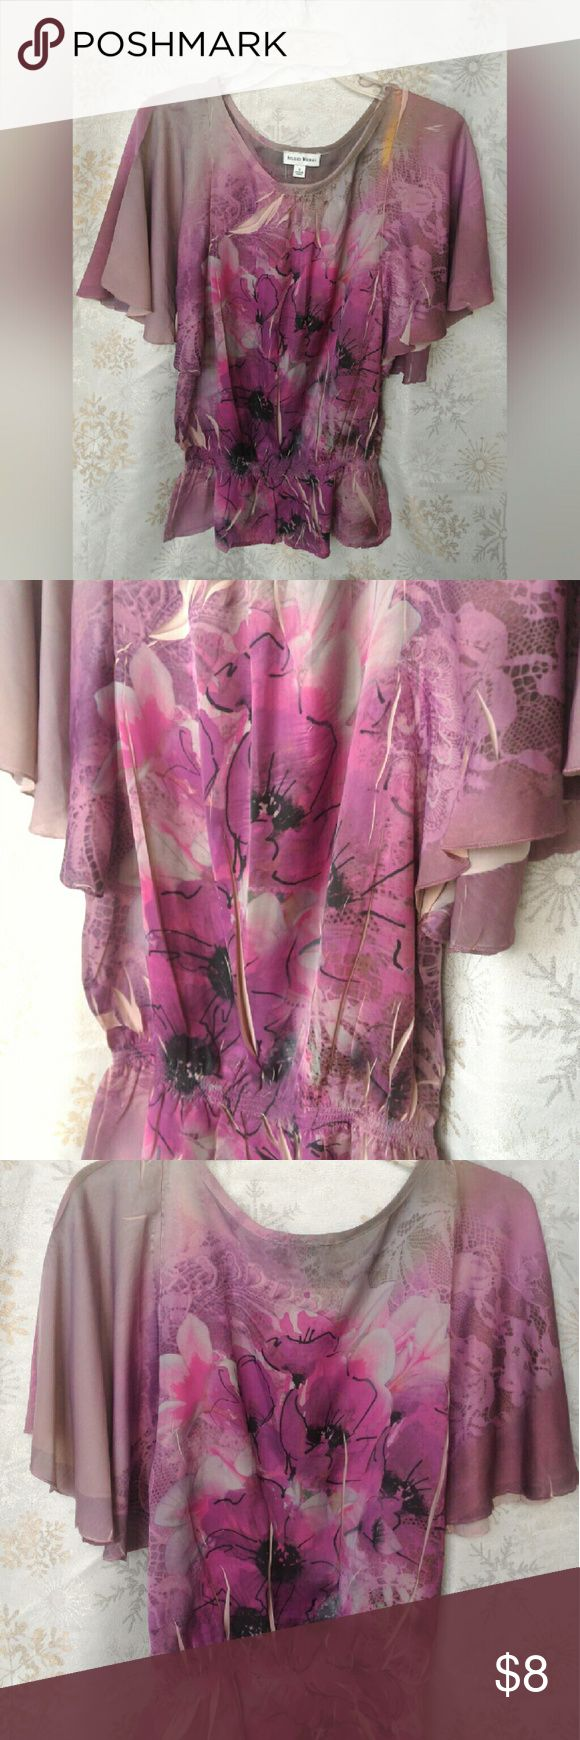 Purple/pink Floral Short Sleeved Tunic Pretty flouncy, flowy sleeved top. Gathered/cinched at the bottom. studio works Tops Tunics